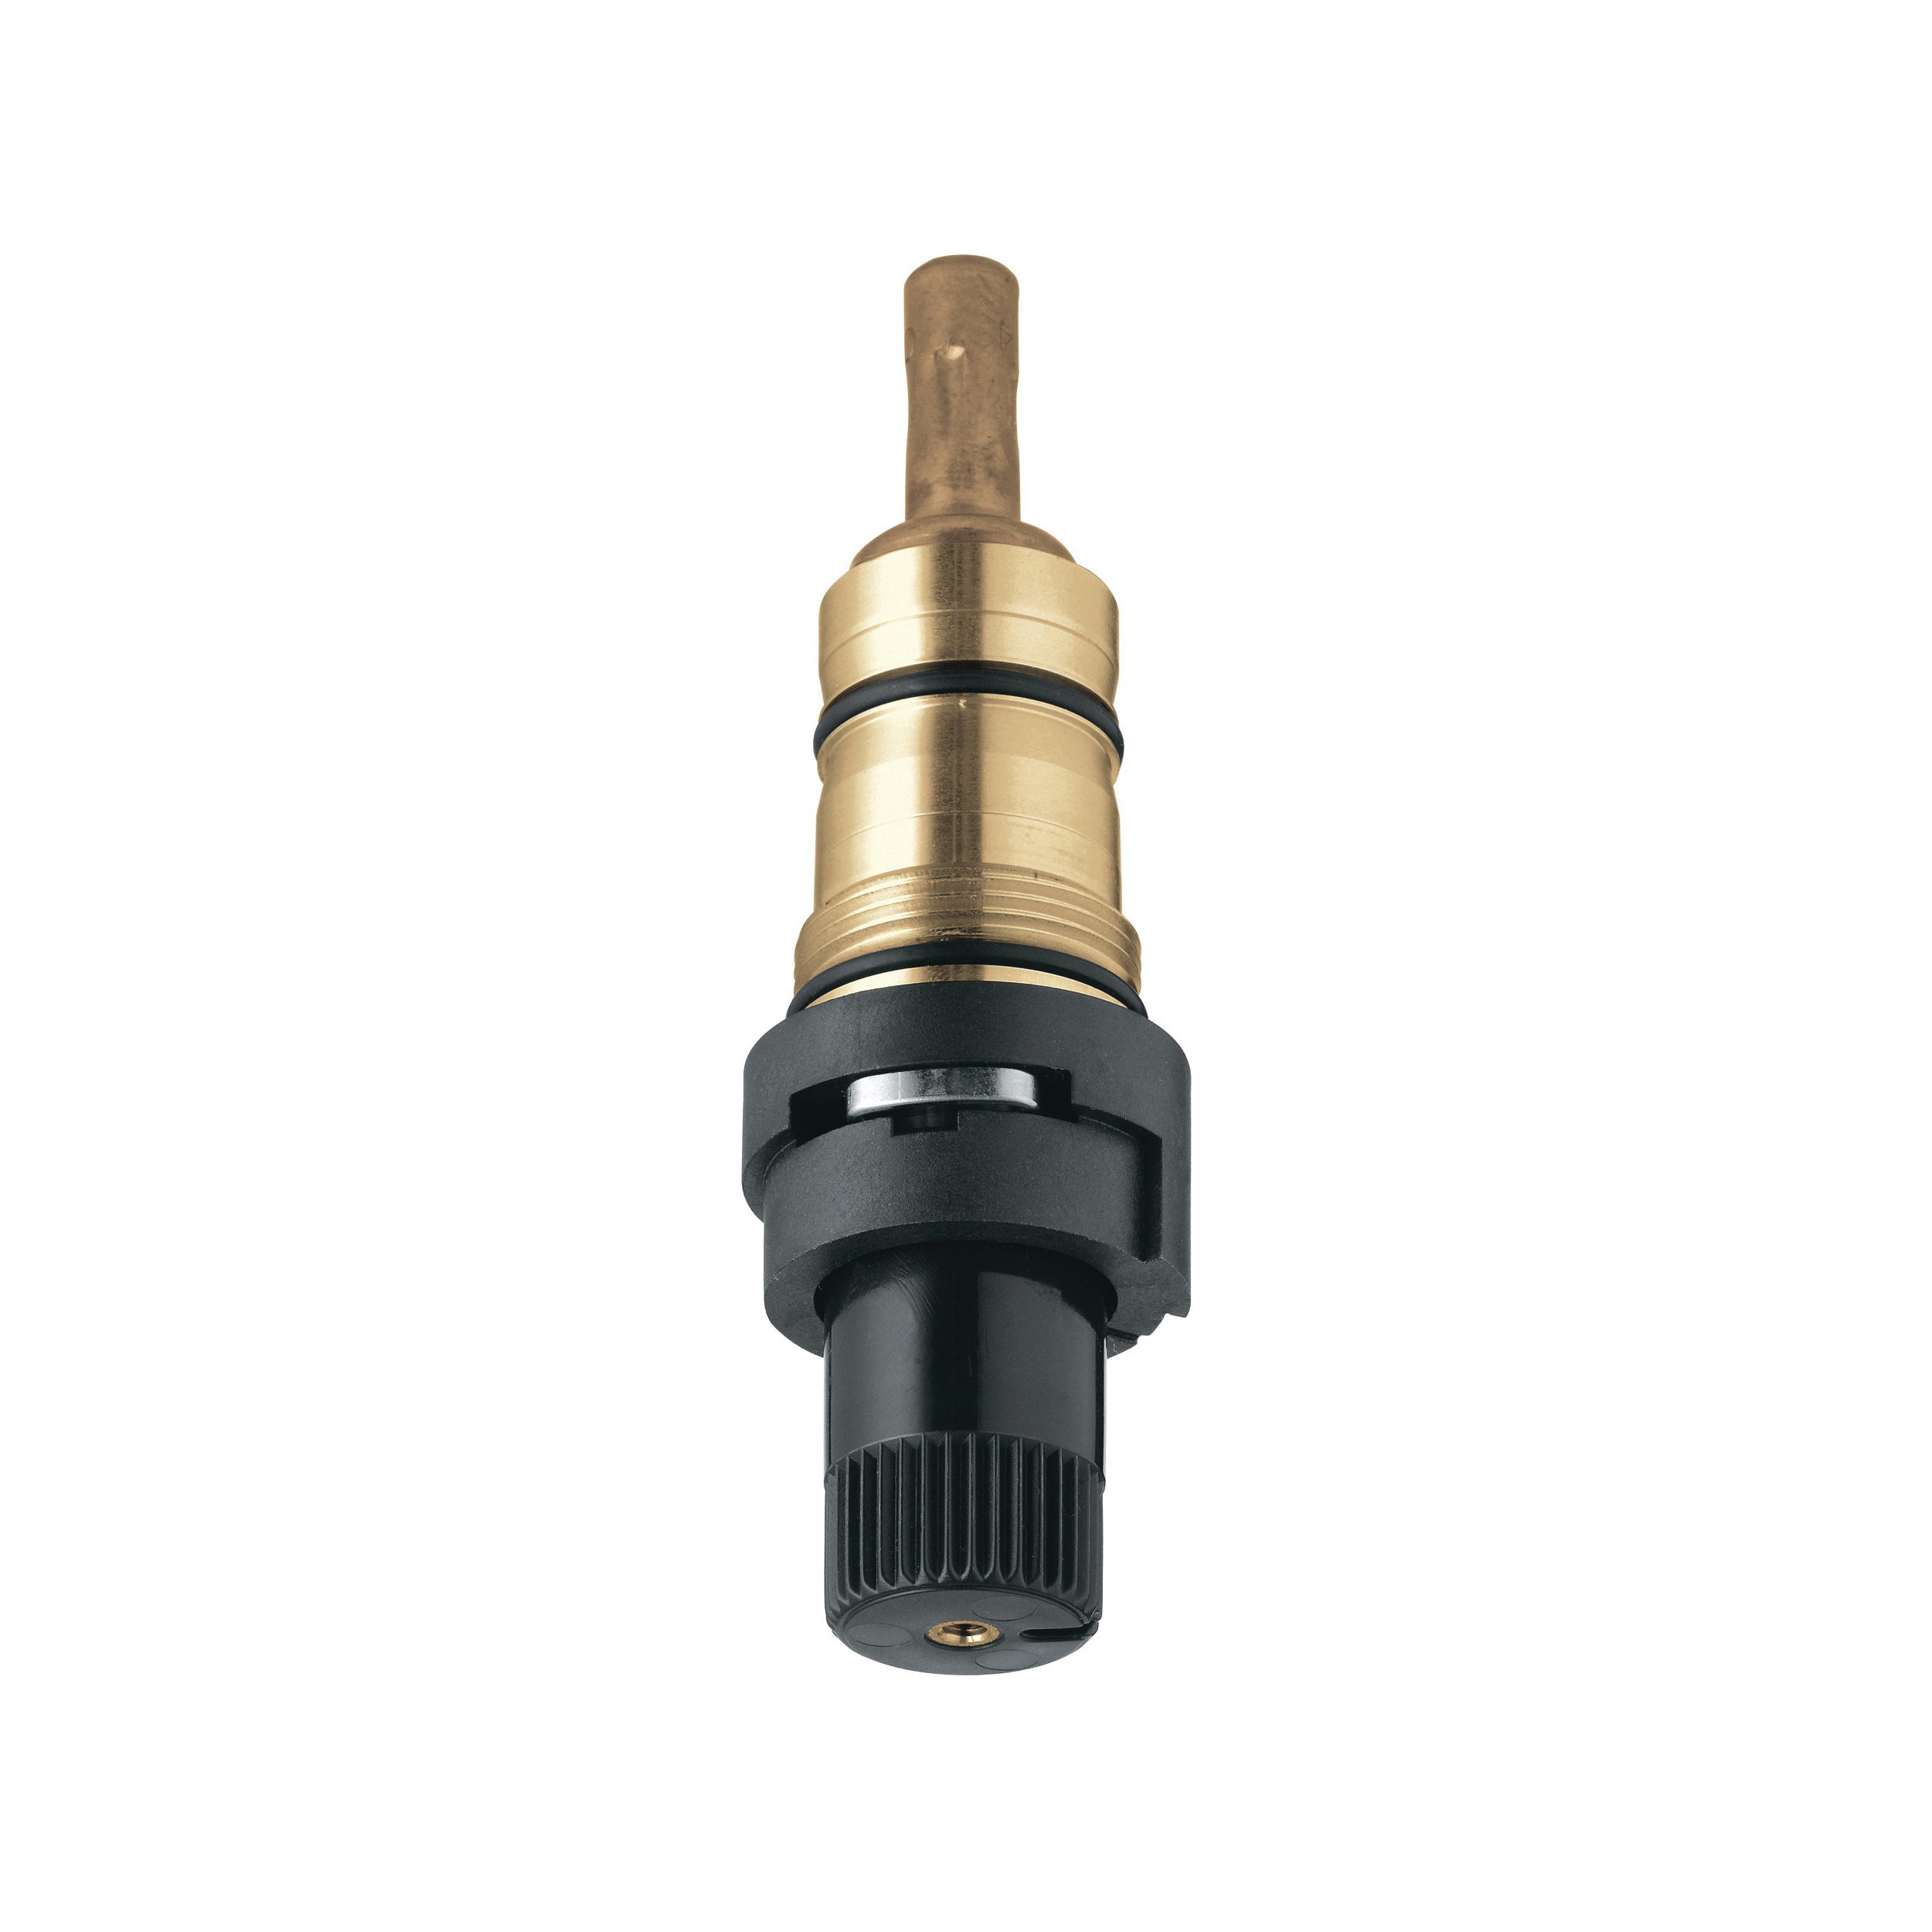 GROHE 47662000 Atrio® Thermostat Cartridge With Non-Rising Spindle, 1/2 in